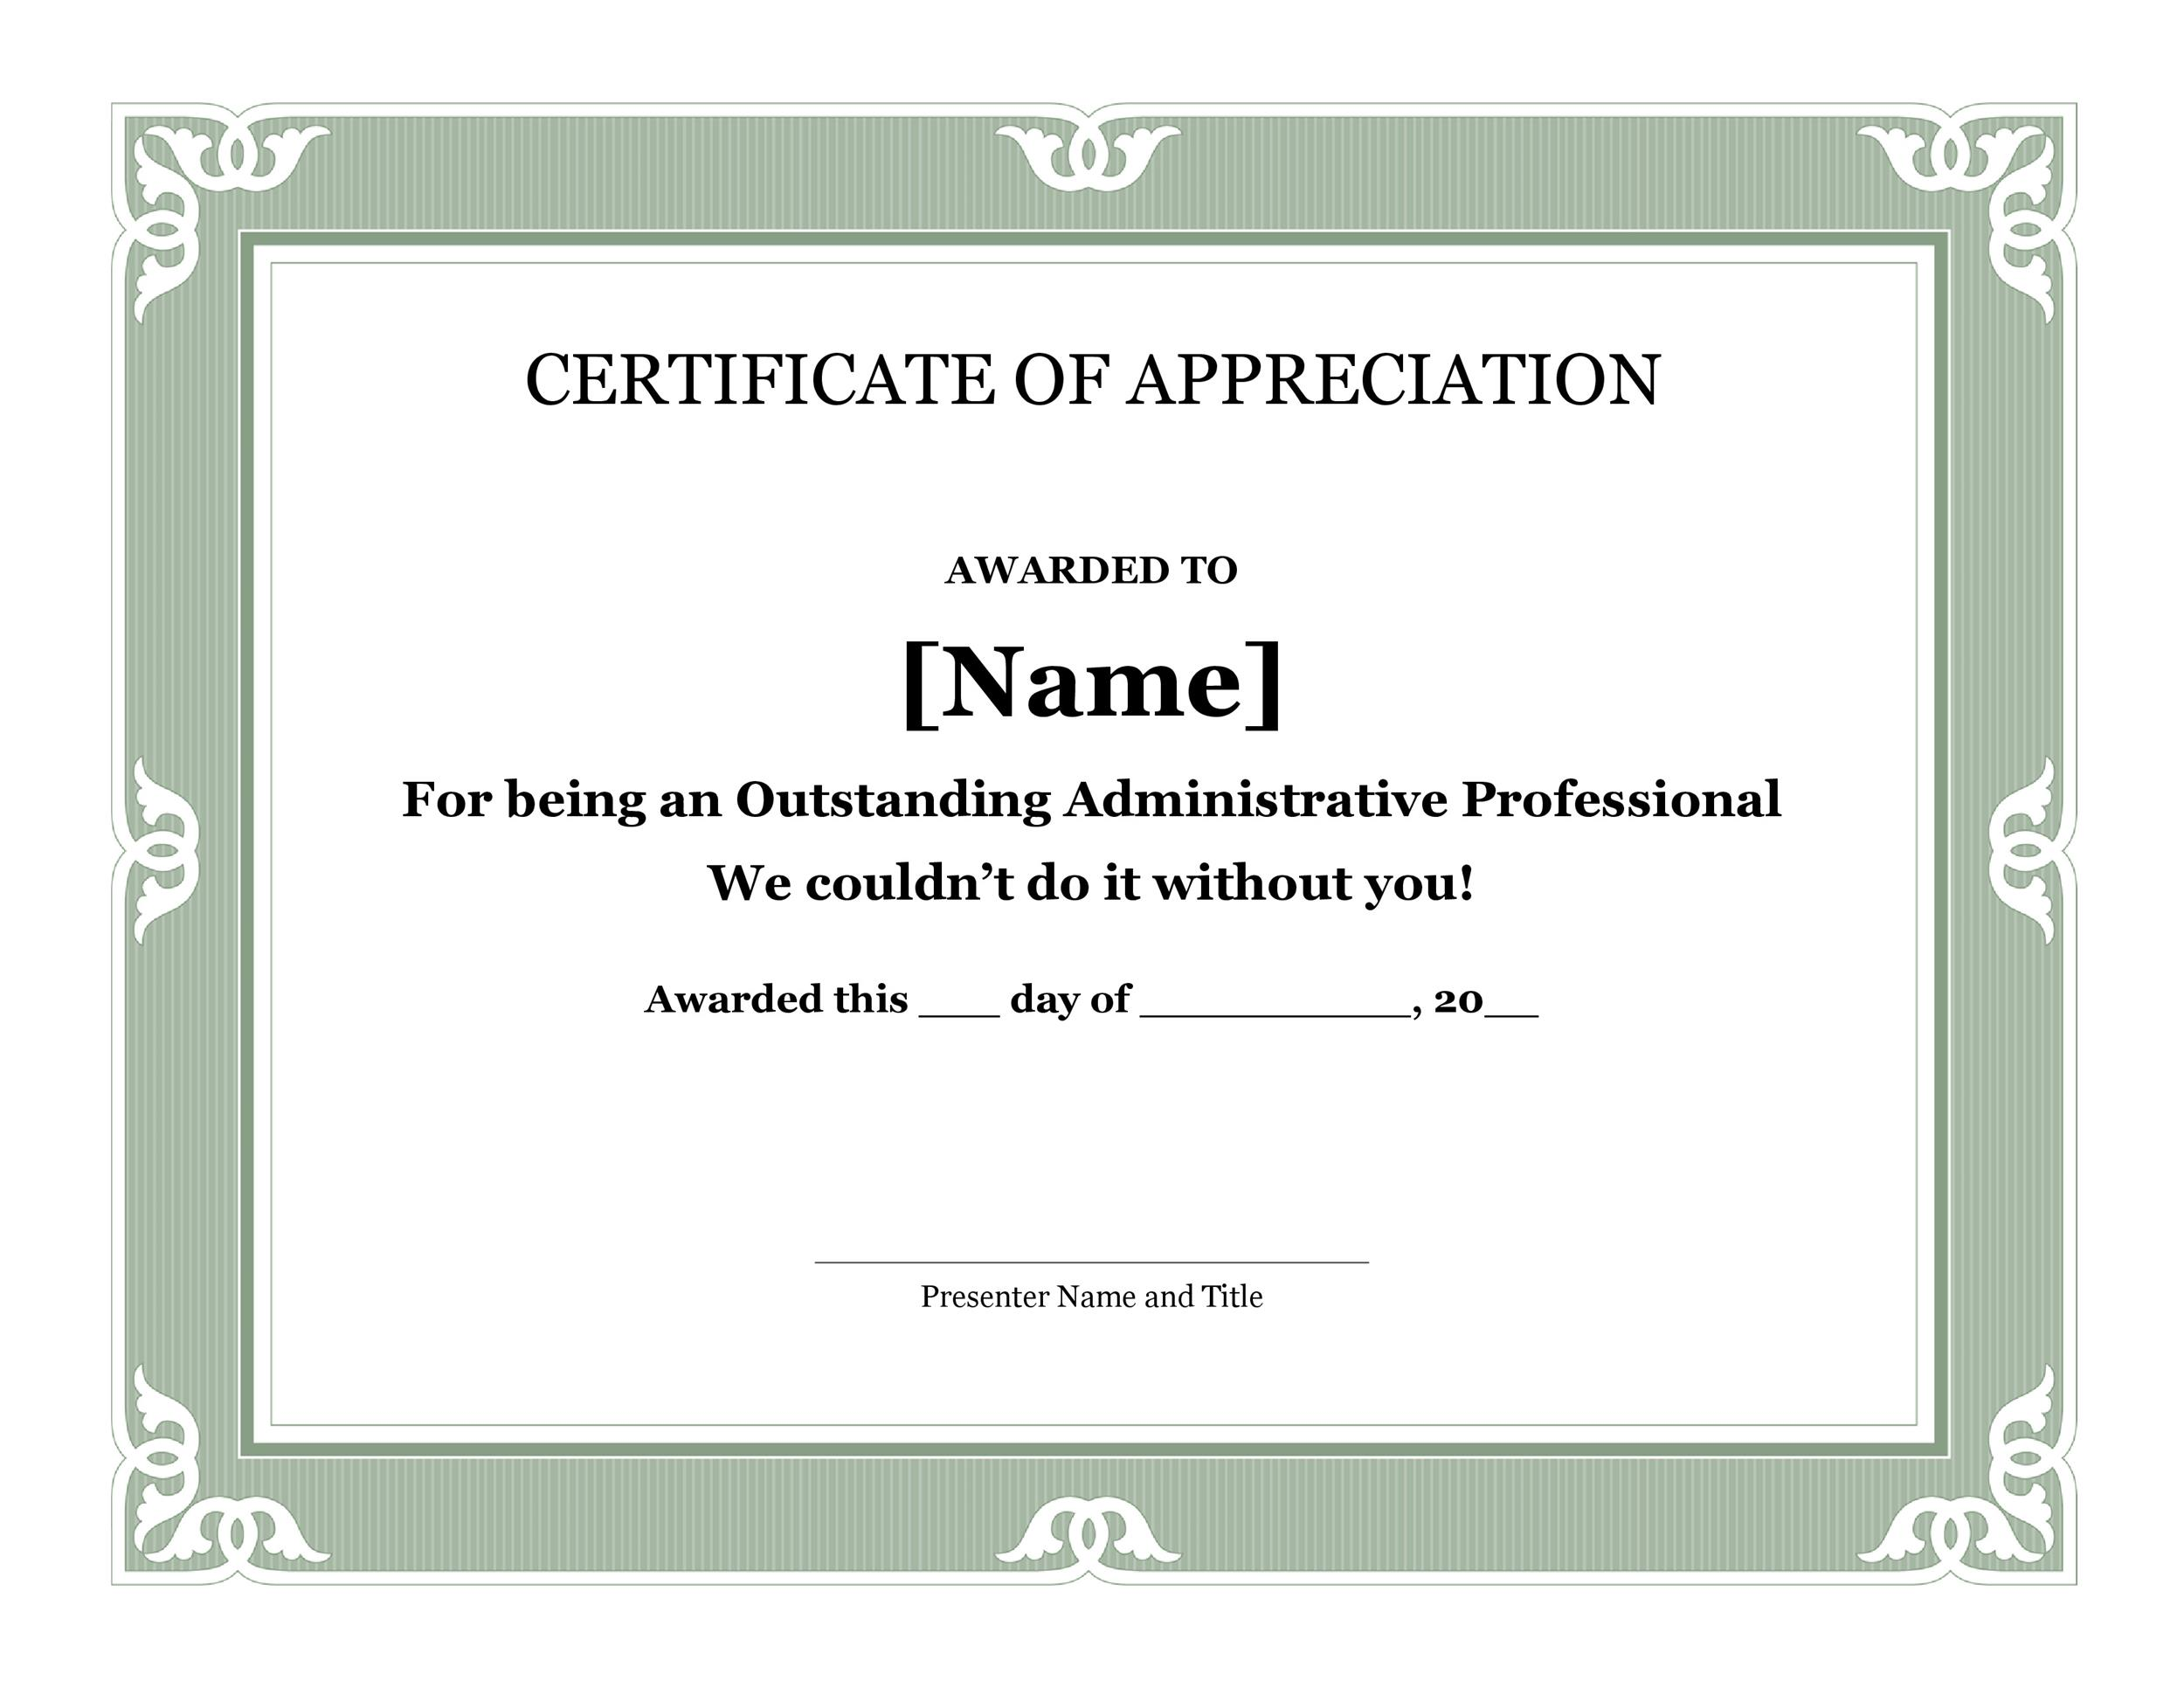 30 free certificate of appreciation templates and letters printable certificate of appreciation 18 icon download 38262 kb yadclub Images